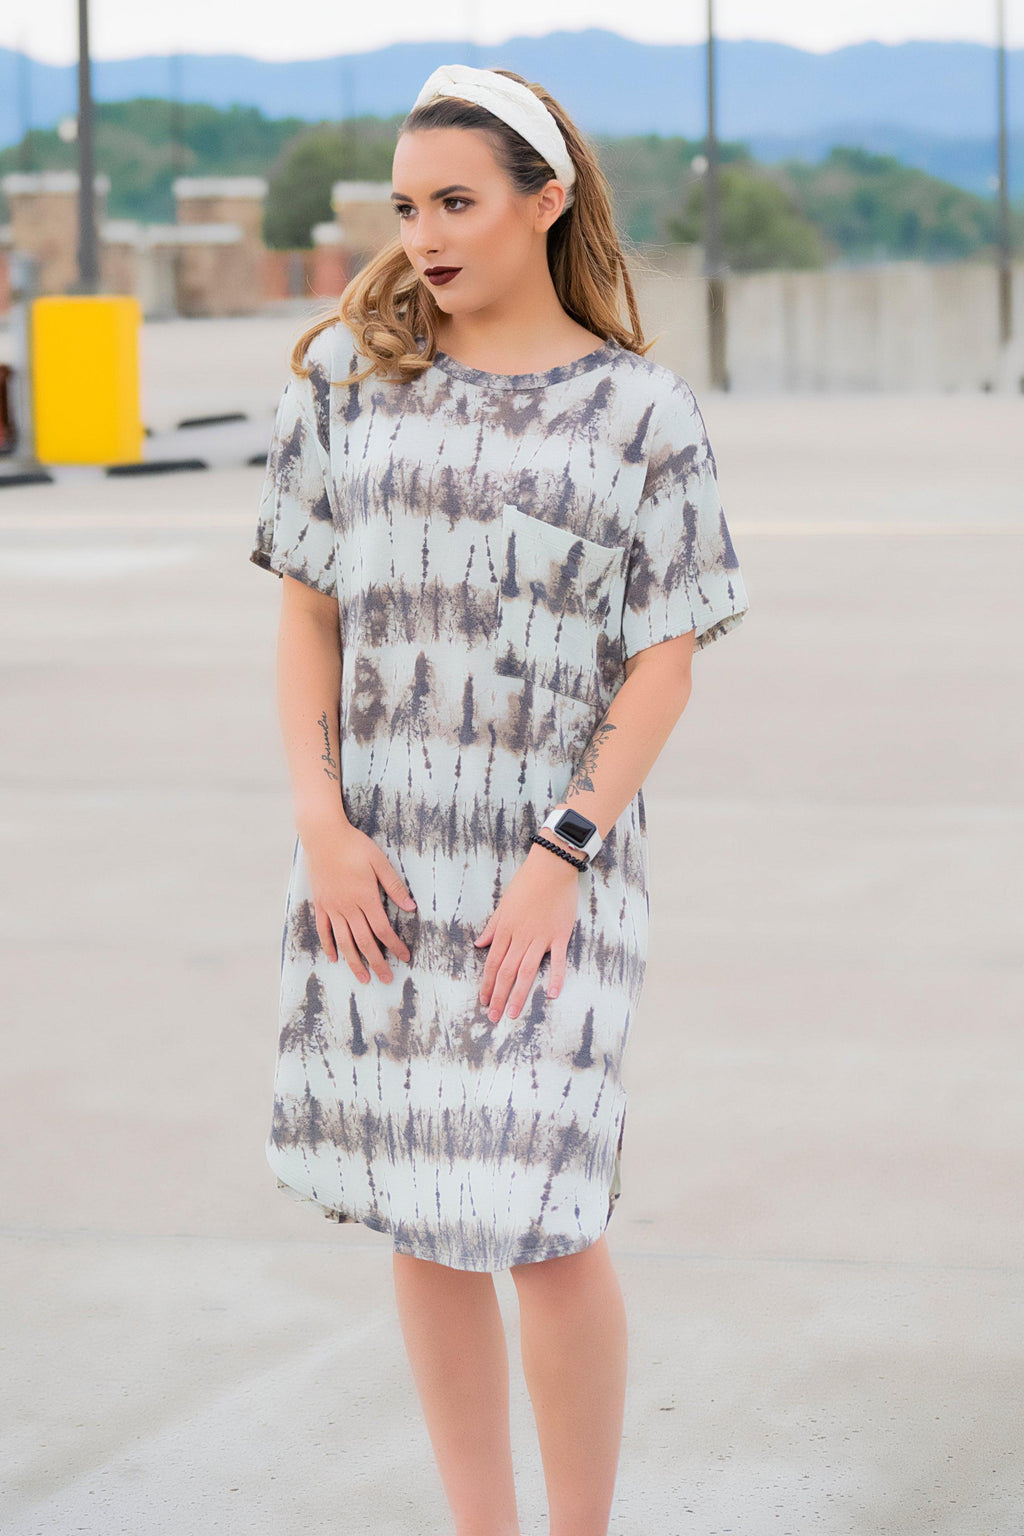 Mint/Charcoal Tie dye dress - 512 Boutique